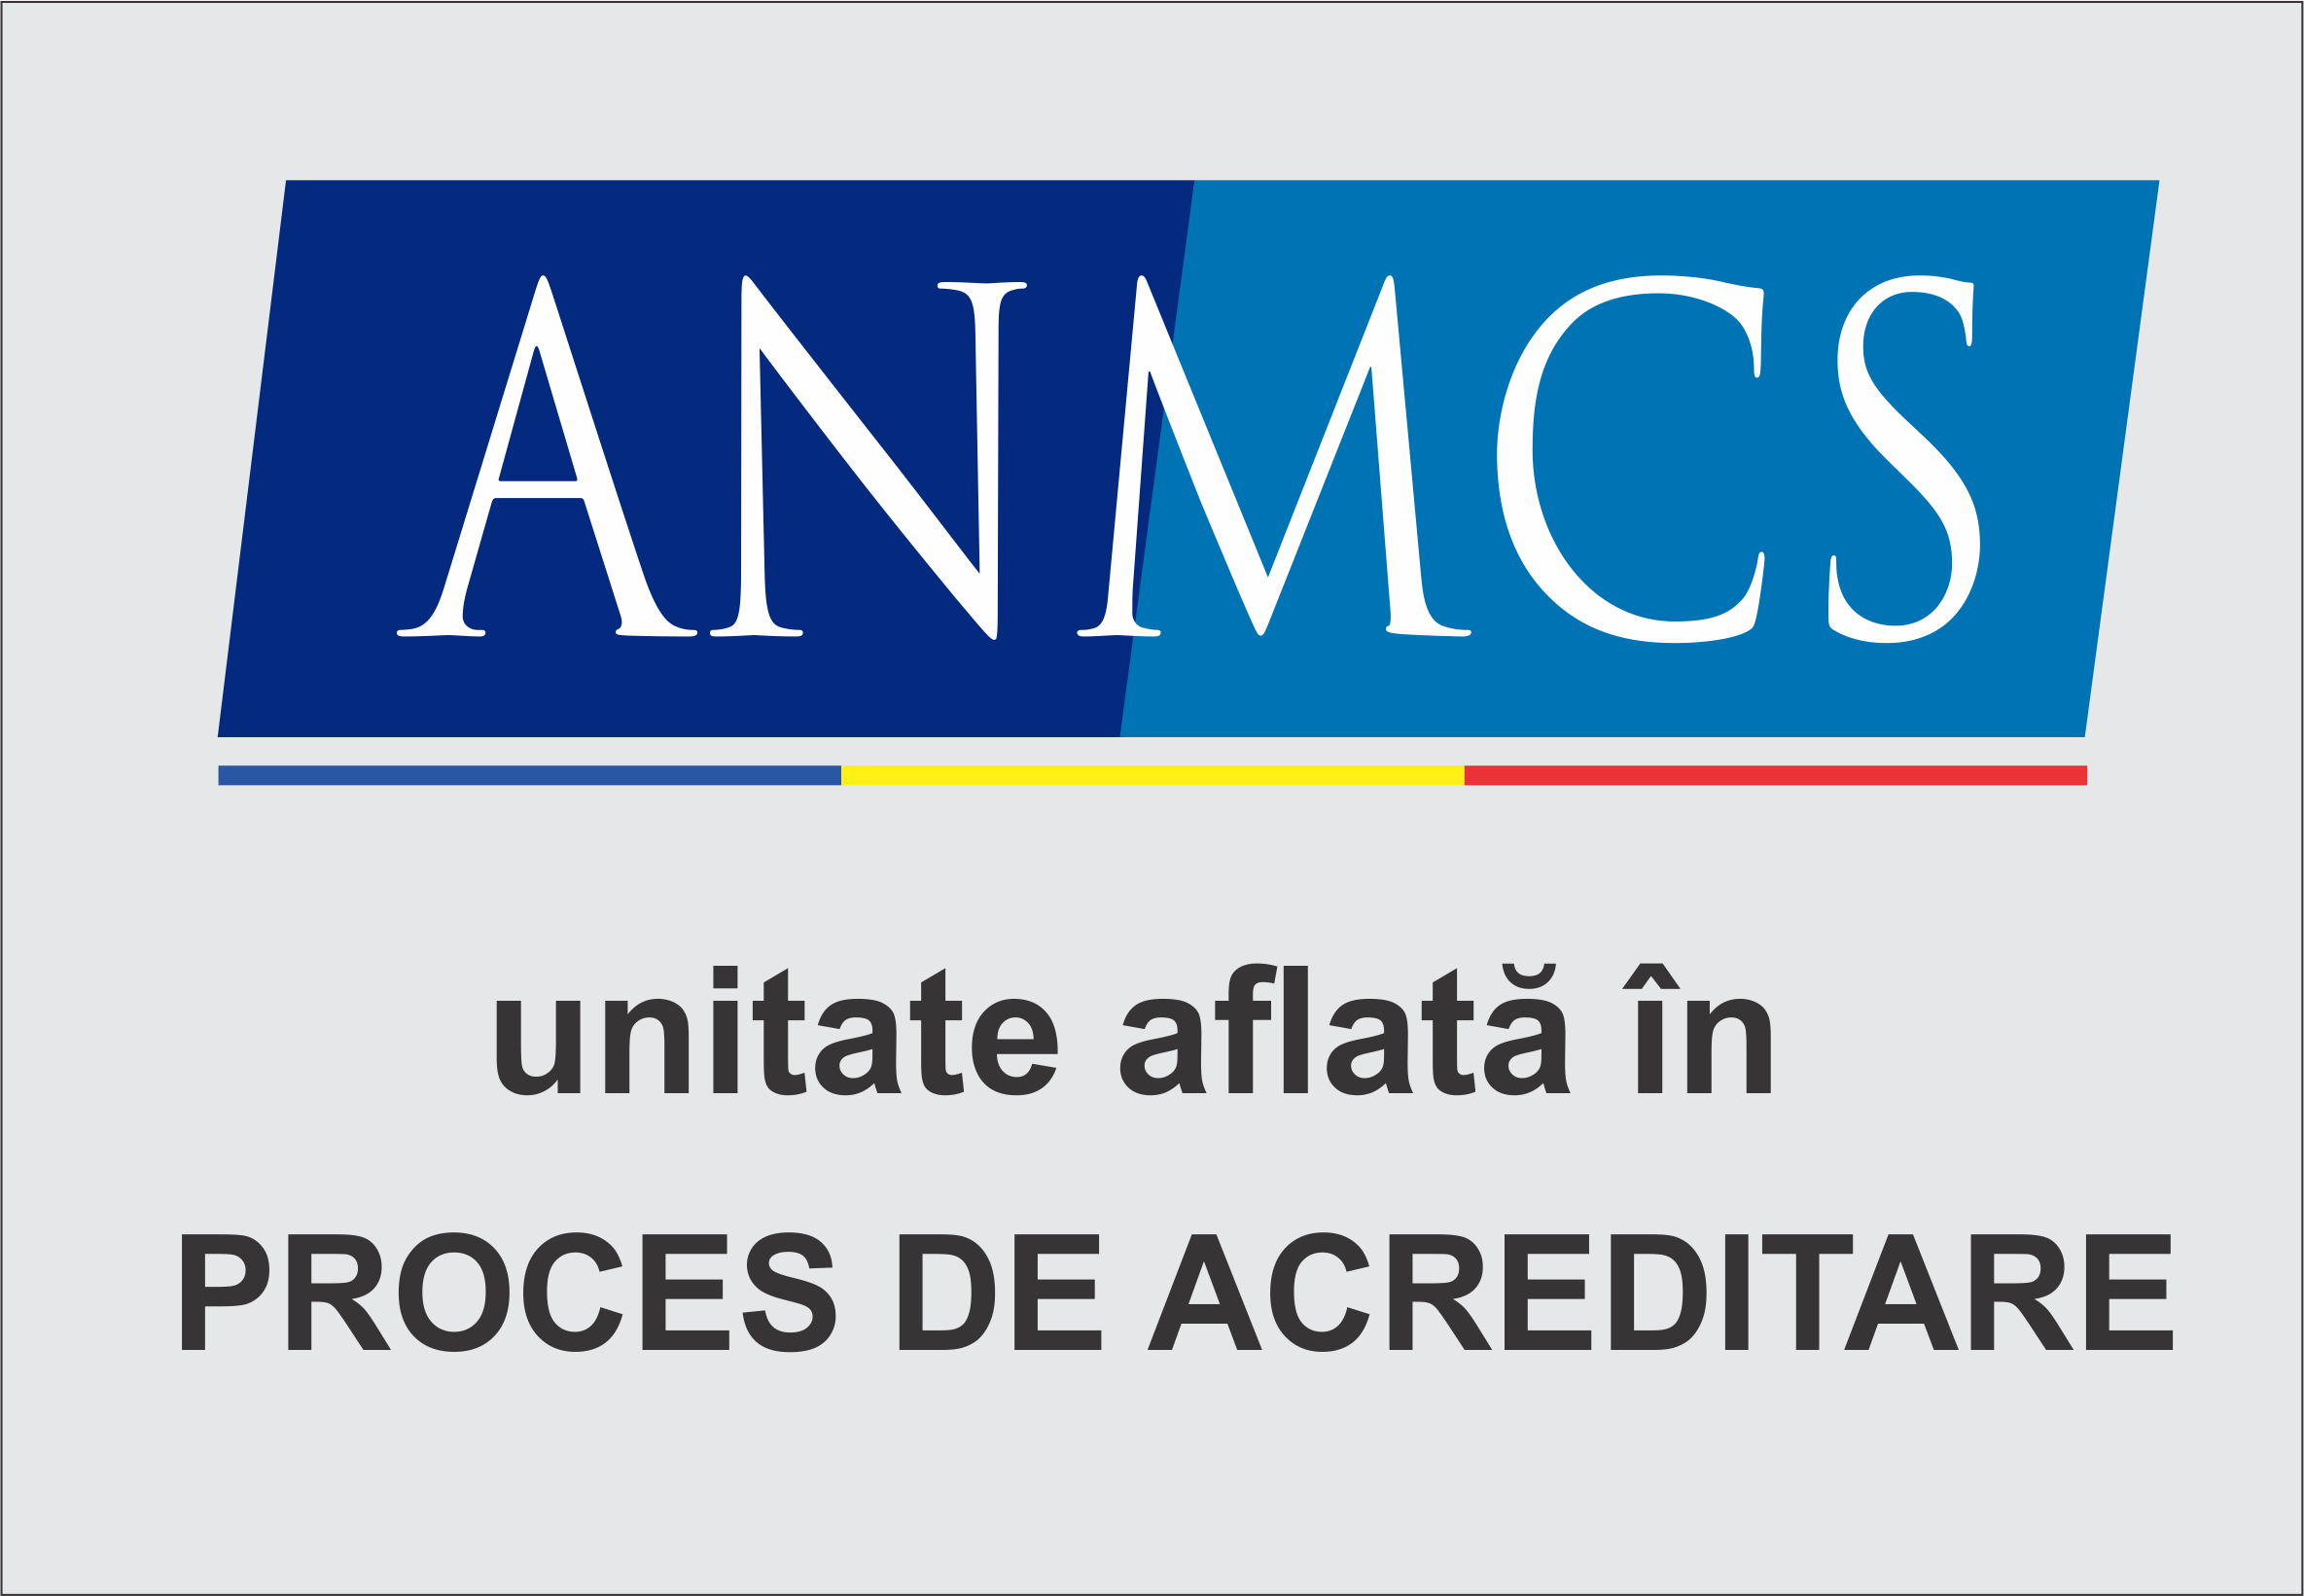 ANMCS - Unitate in proces de acreditare